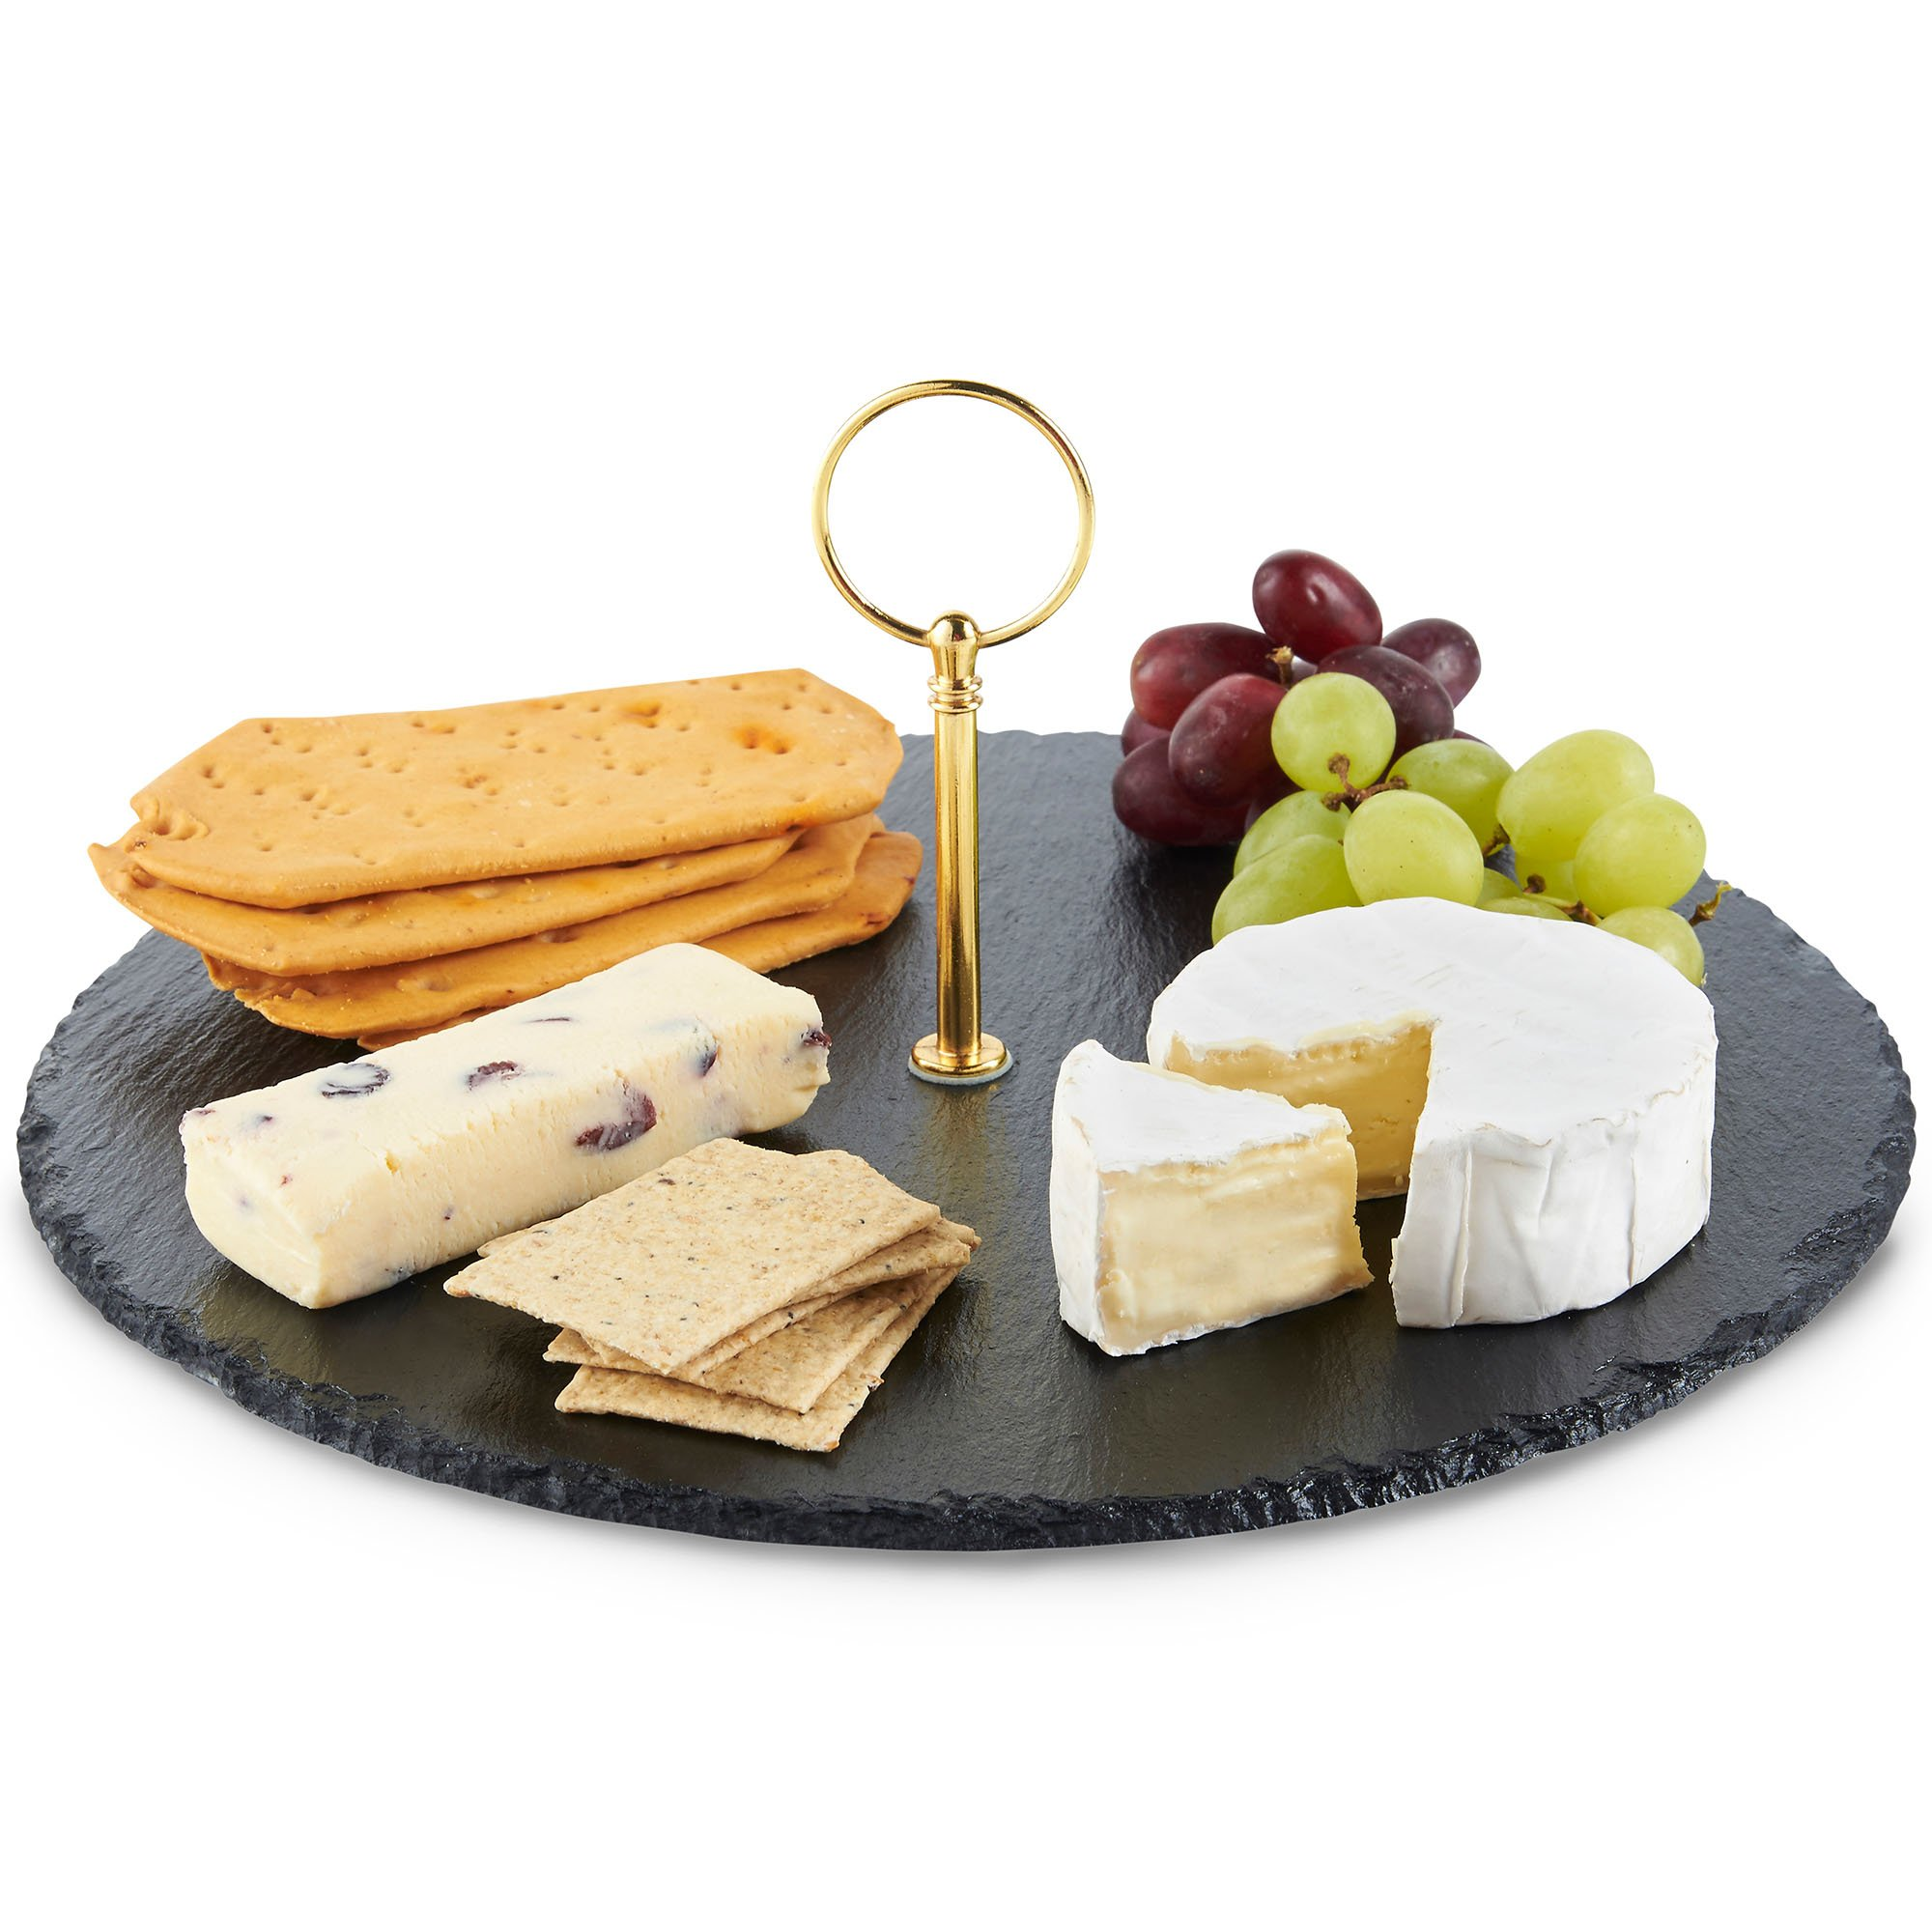 VonShef Round Natural Slate Cheese Board Serving Tray Set With Gold Brushed Carrying Handle, Perfect for Serving Cheese, Tapas, Cake or Dessert, Diameter 12 Inches